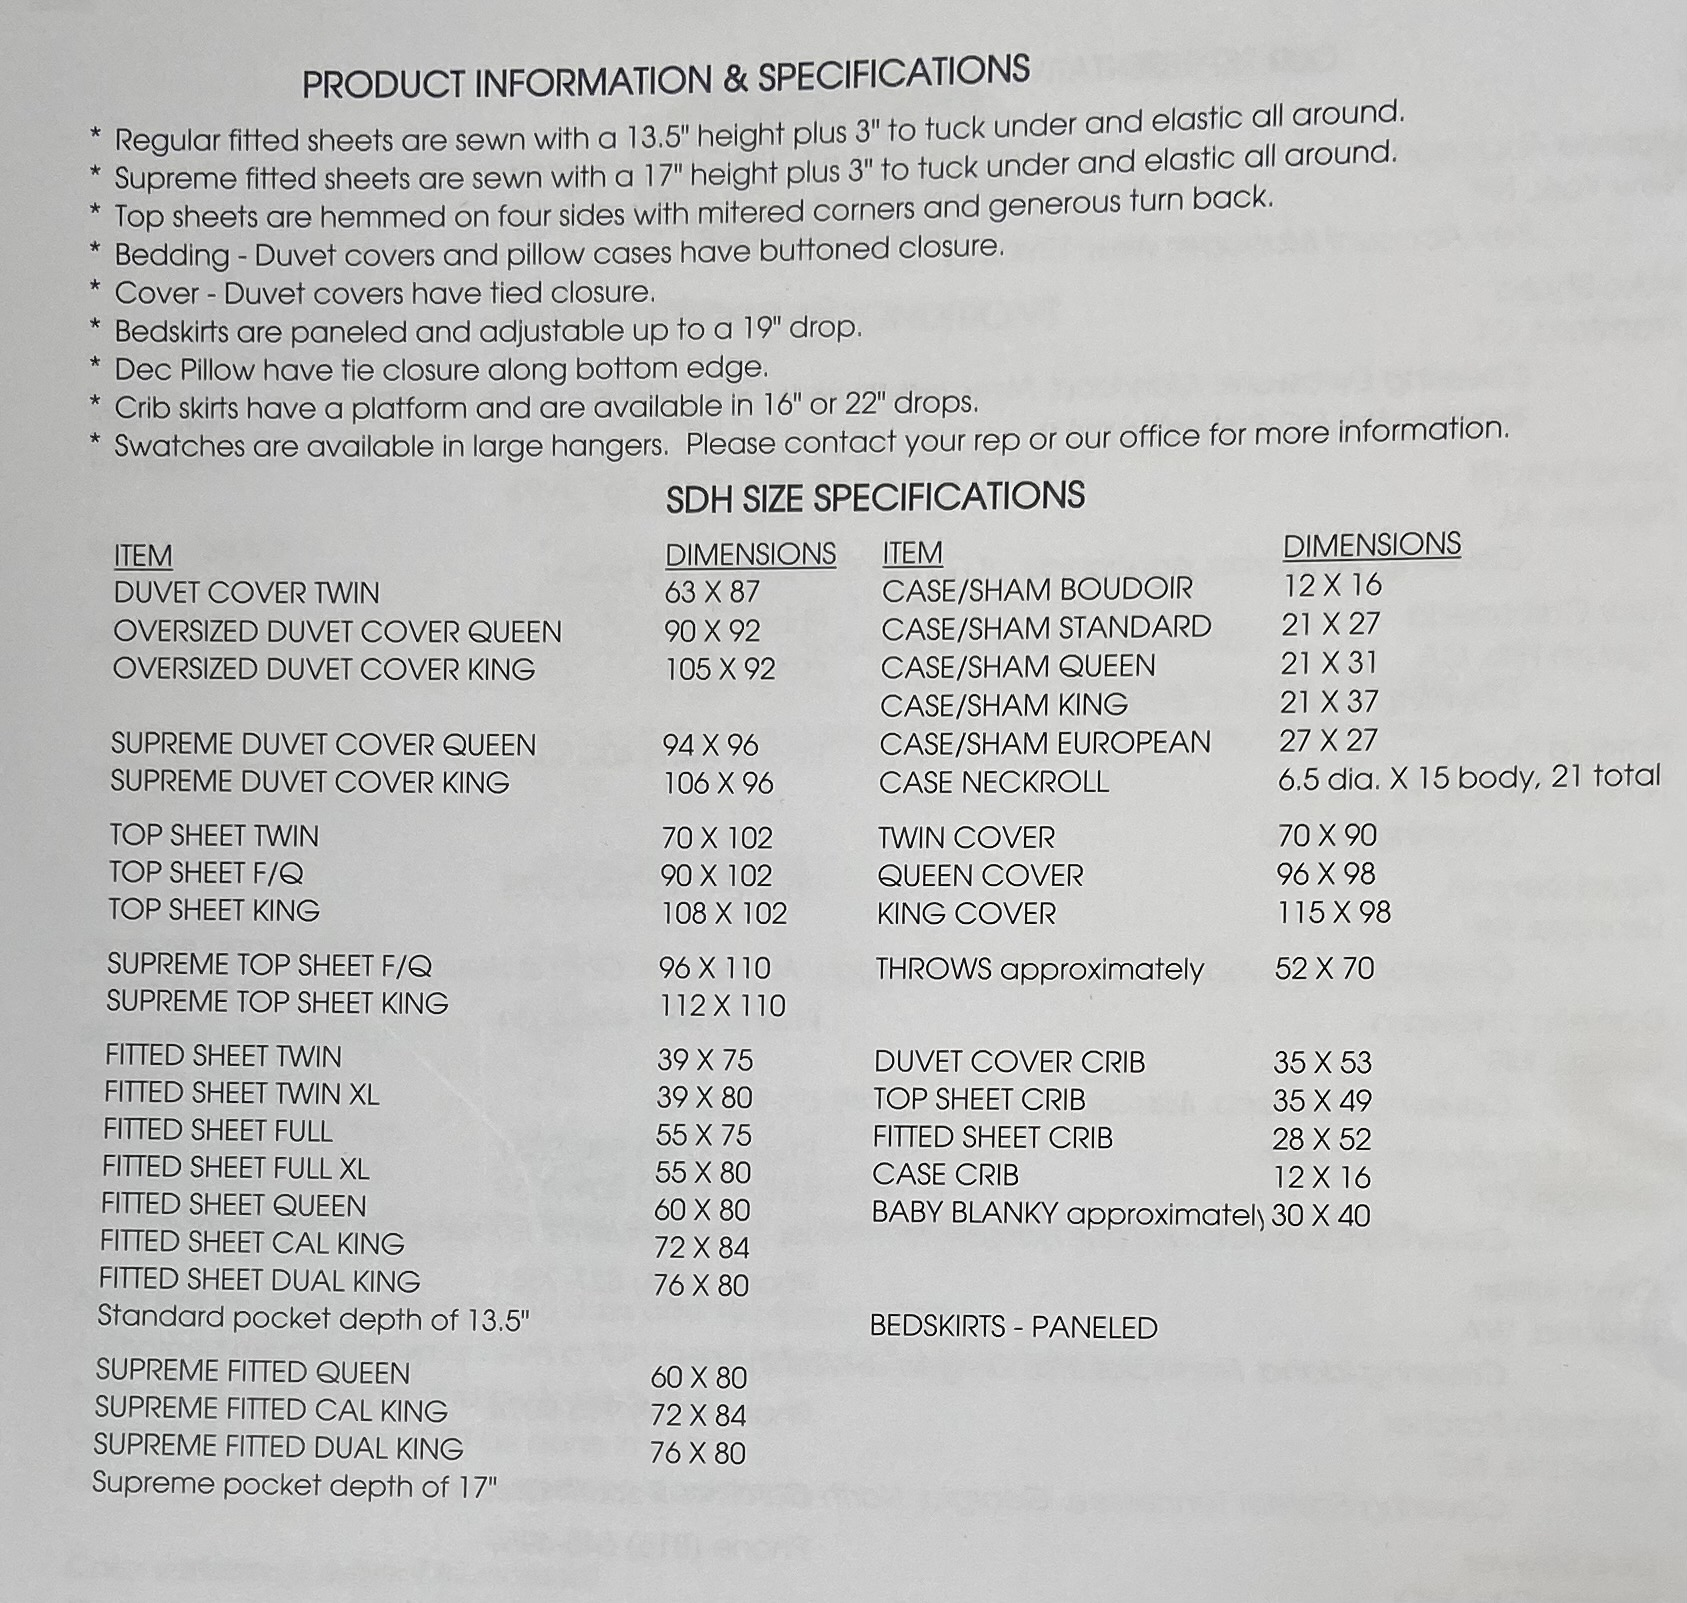 SDH Size Chart and Specs